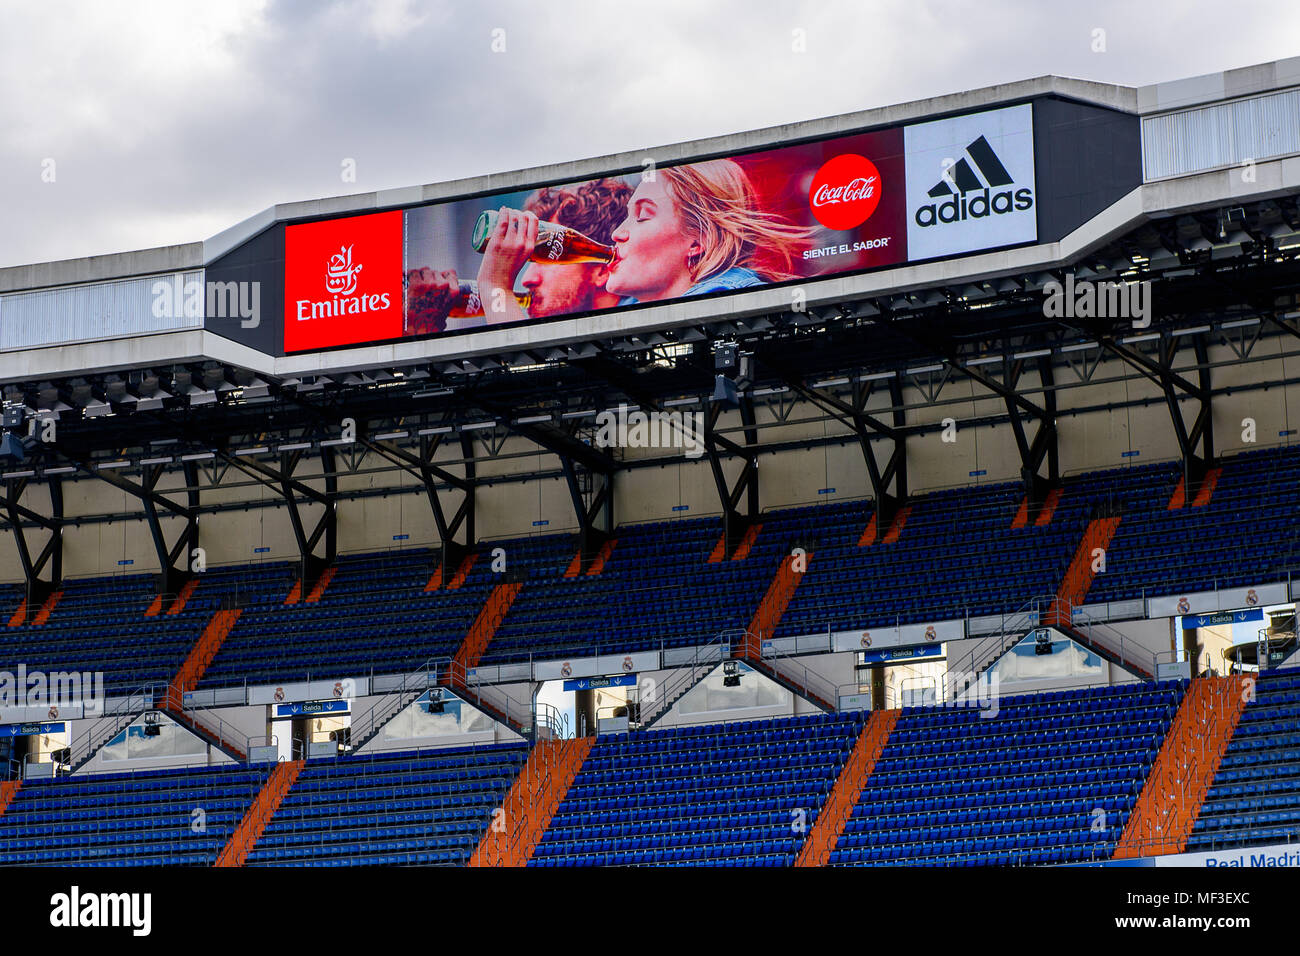 Deslumbrante Marchito Dinkarville  MADRID - APRIL 14, 2018: Emirates, Coca Cola, Adidas logos on the screen of  the Santiago Bernabeu stadium, the home arean of the football club Real Ma  Stock Photo - Alamy